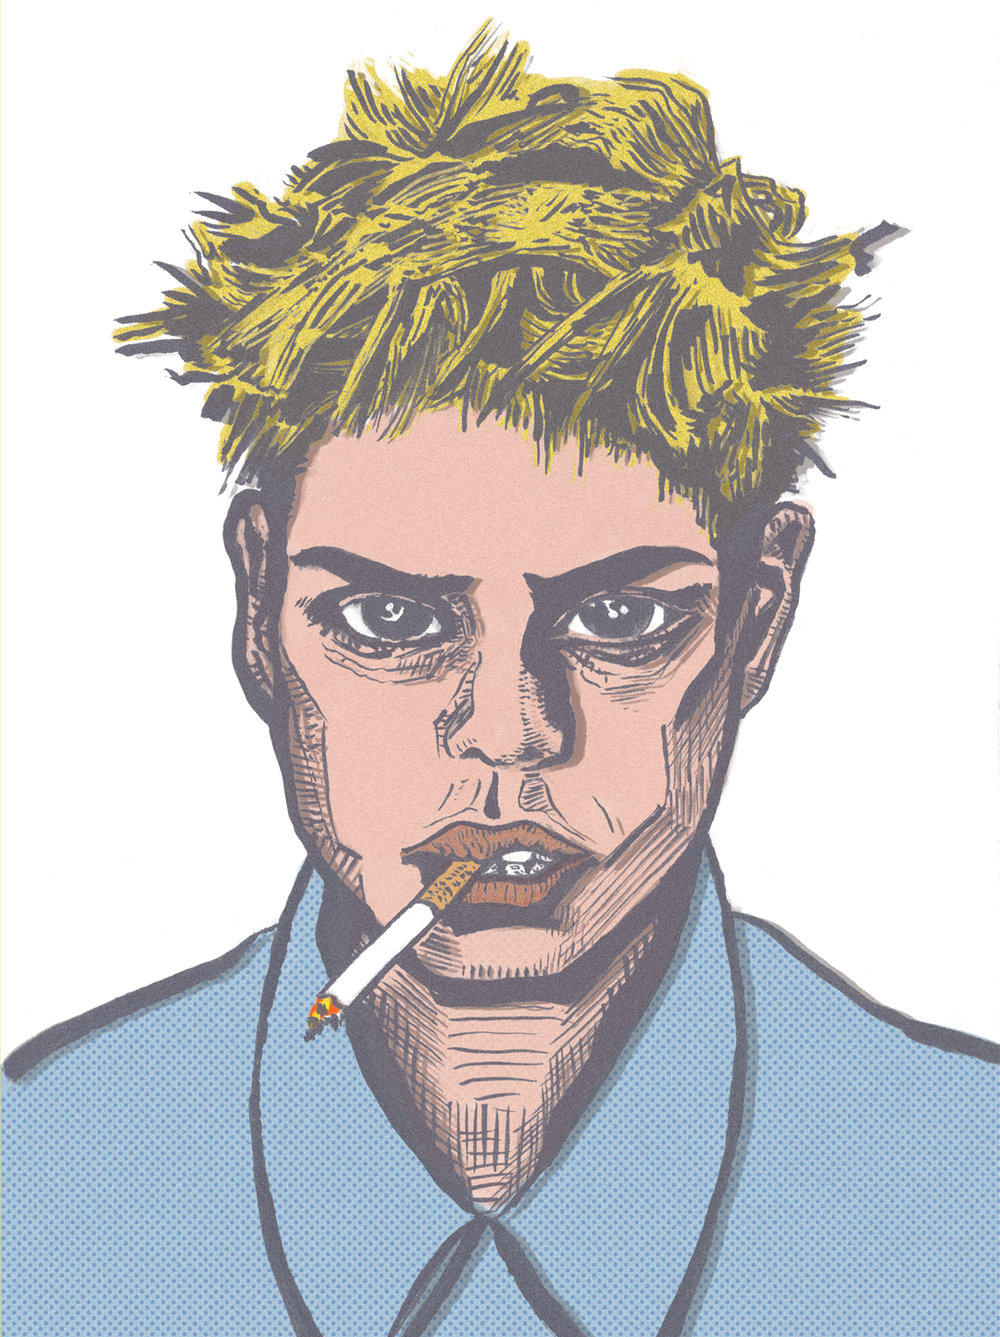 Portrait  //  brush pen, digital  //  January 2018